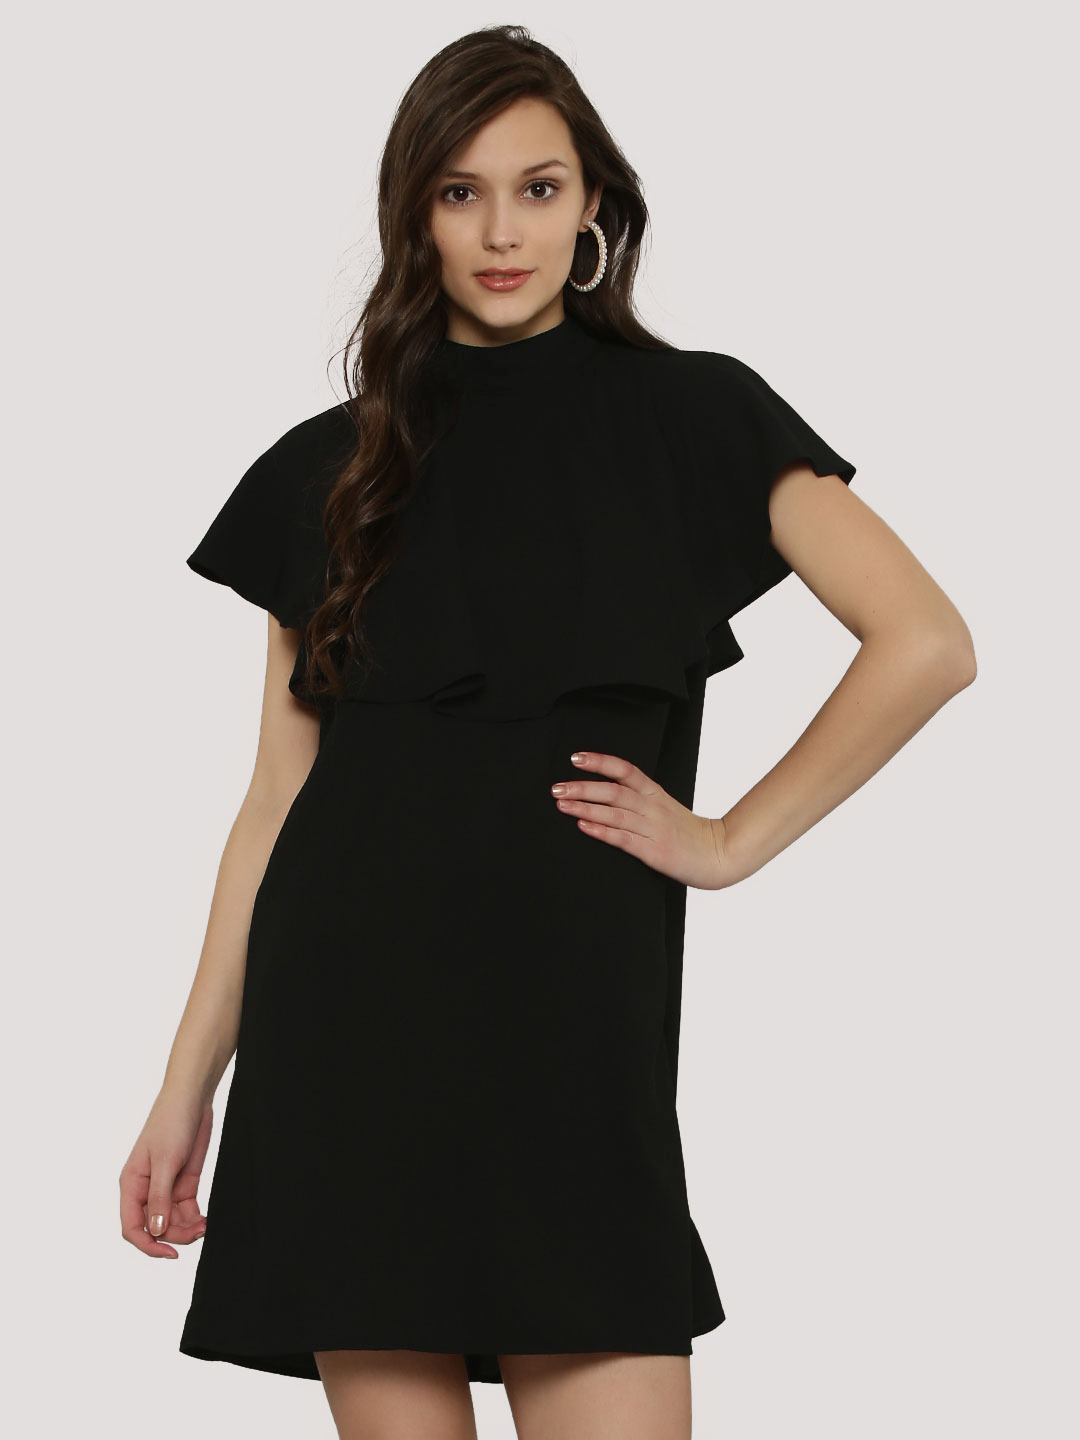 Femella Black High Neck Ruffle Dress 1